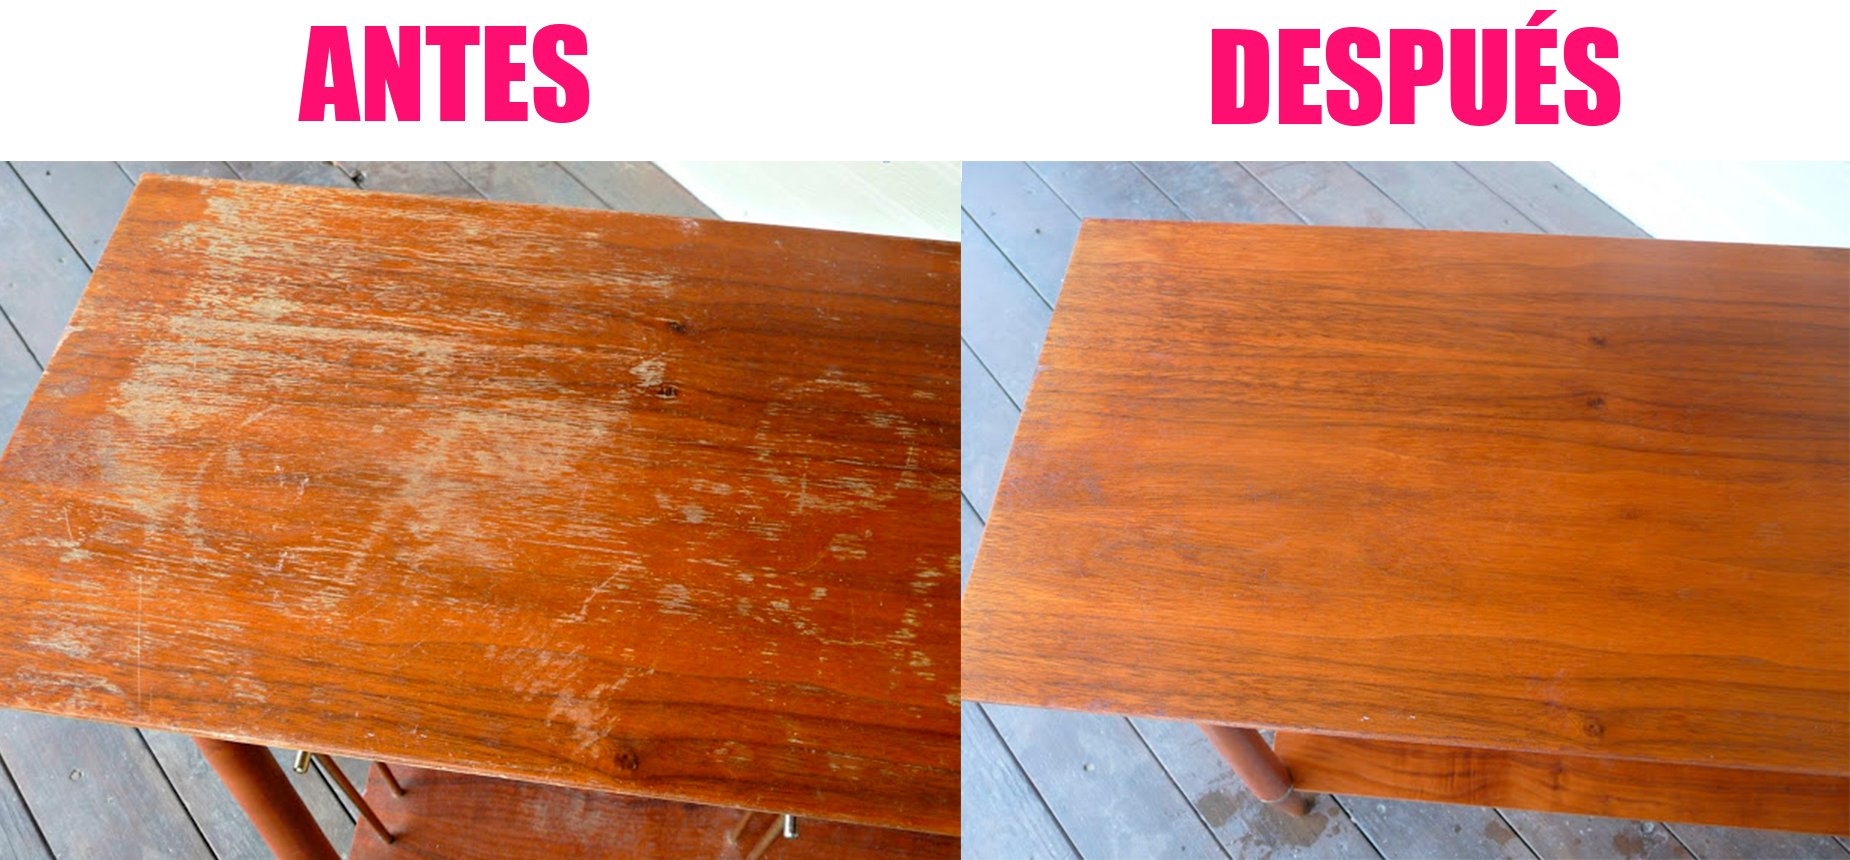 Limpiar muebles madera beautiful un pao seco para - Limpiar muebles de madera ...